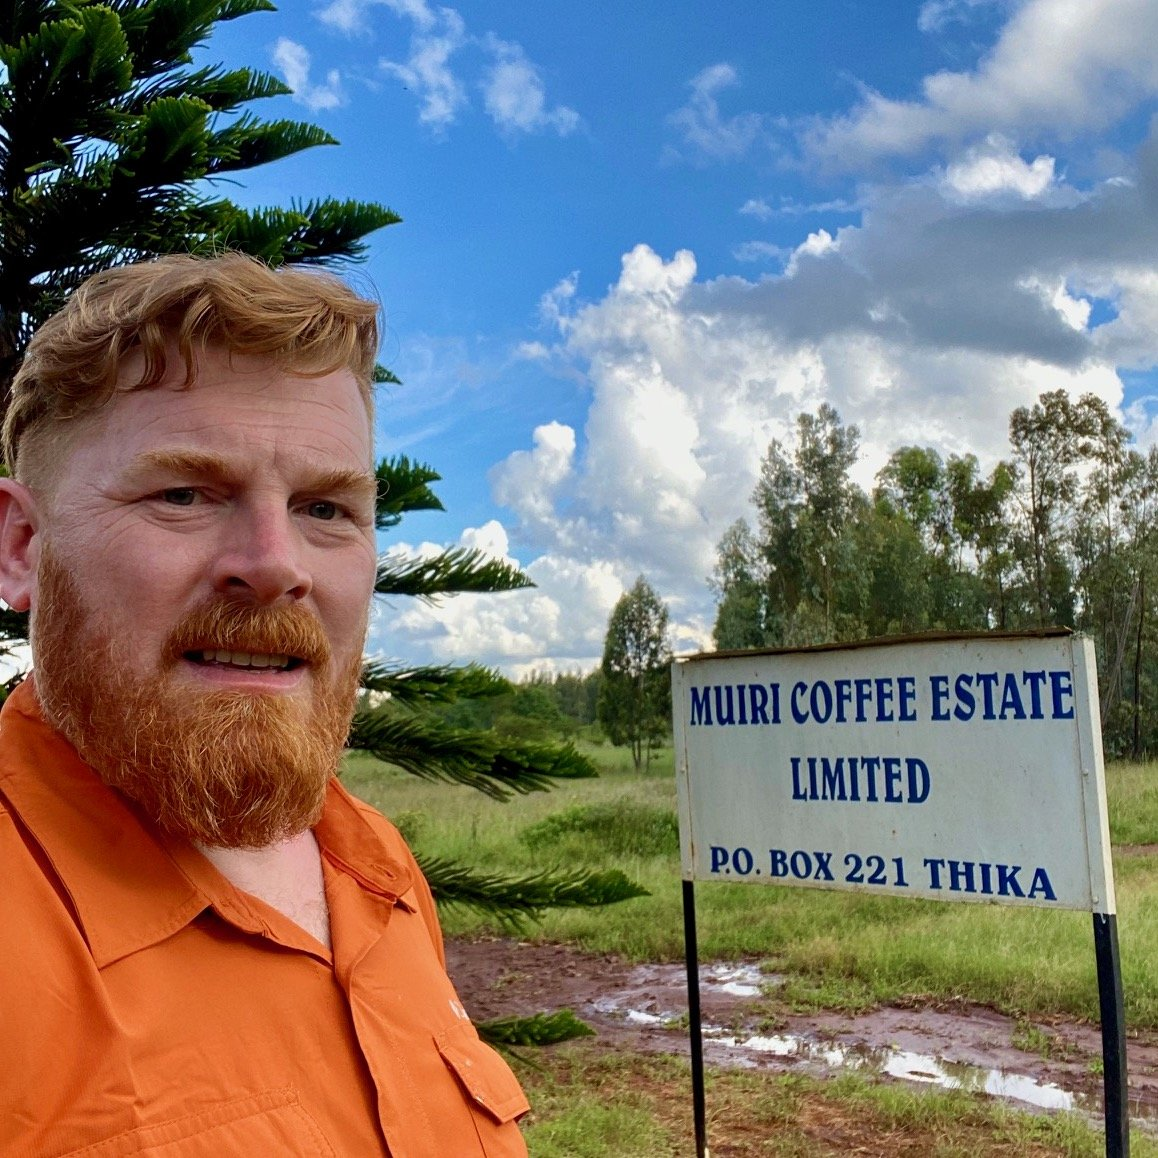 Stephen Leighton. Muiri Estate, Thika, Kenya | Hasbean.co.uk